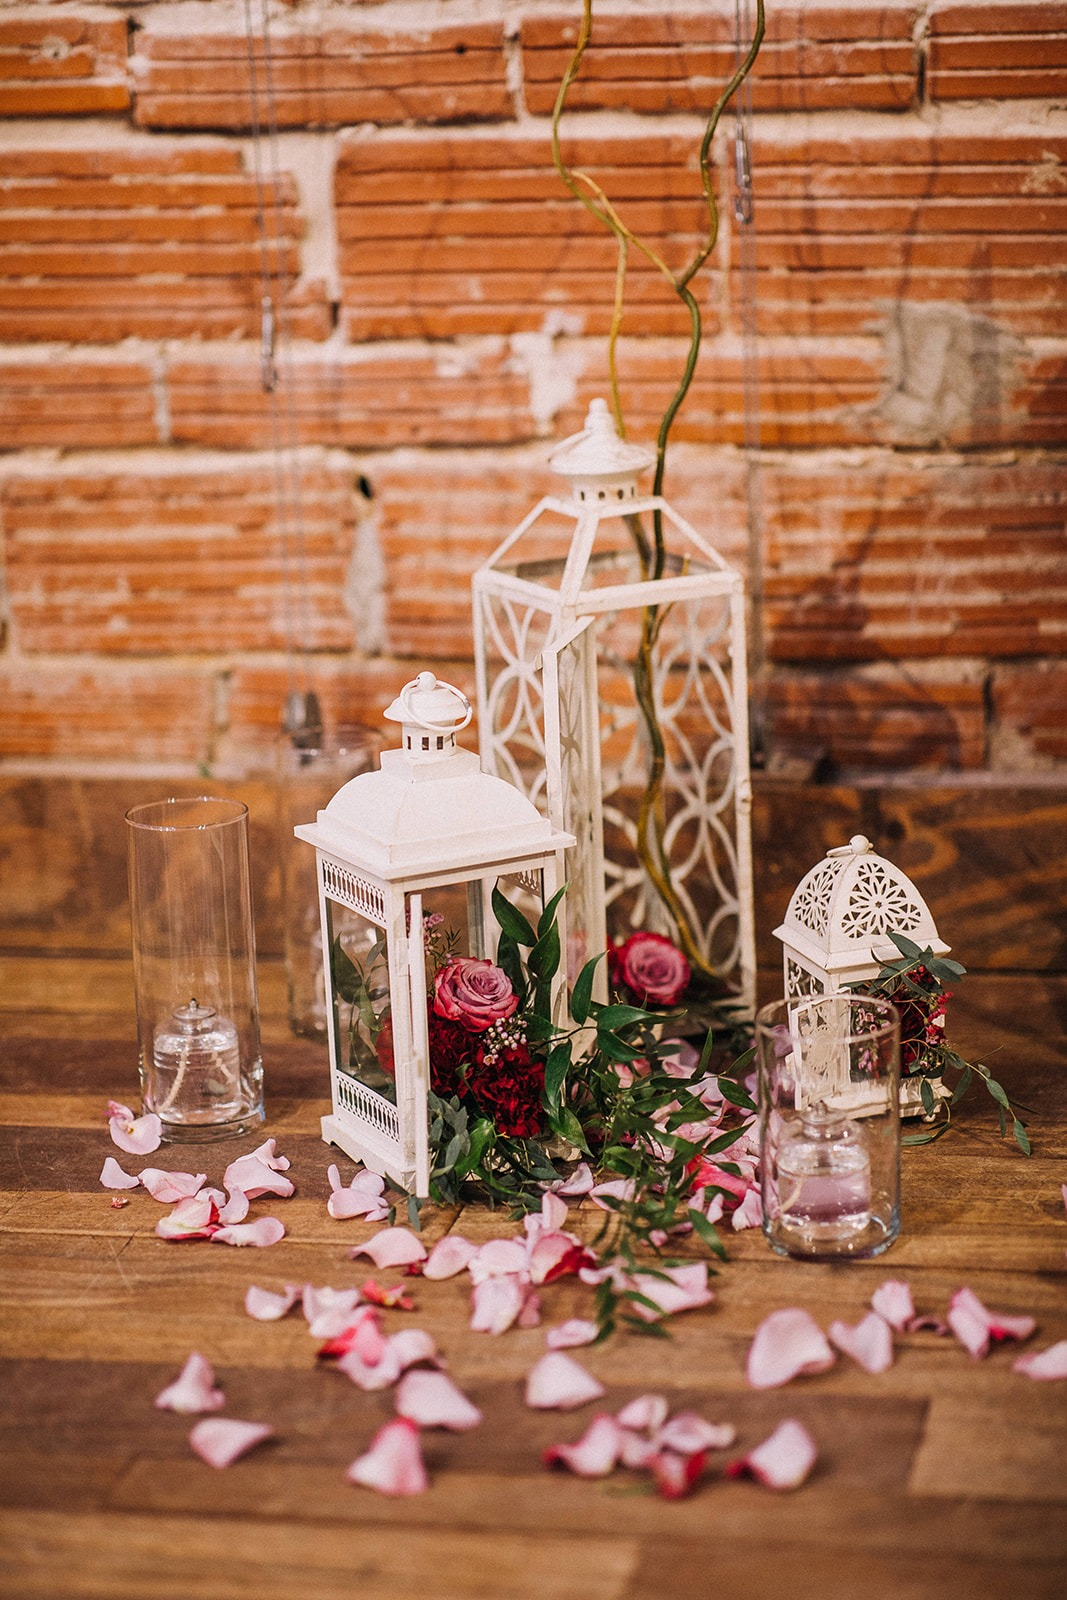 Vintage Wedding Decor against Industrial Exposed Red Brick Wall at Historic Downtown St. Pete Wedding Venue NOVA 535